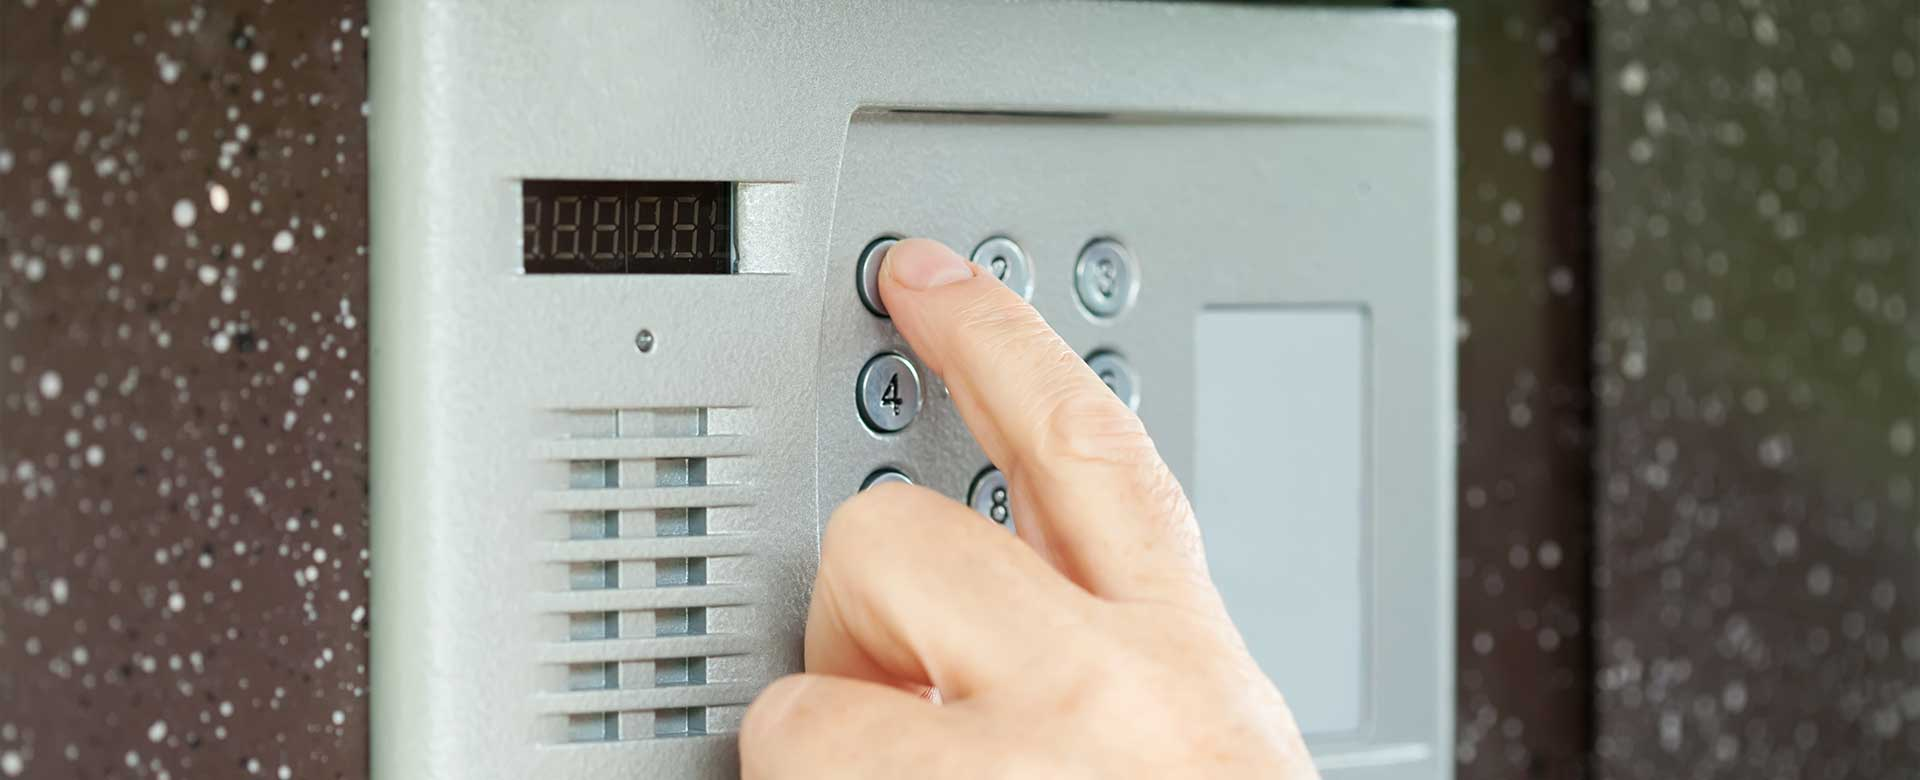 Whether it's protecting your home, family or business we have the alarm system for you